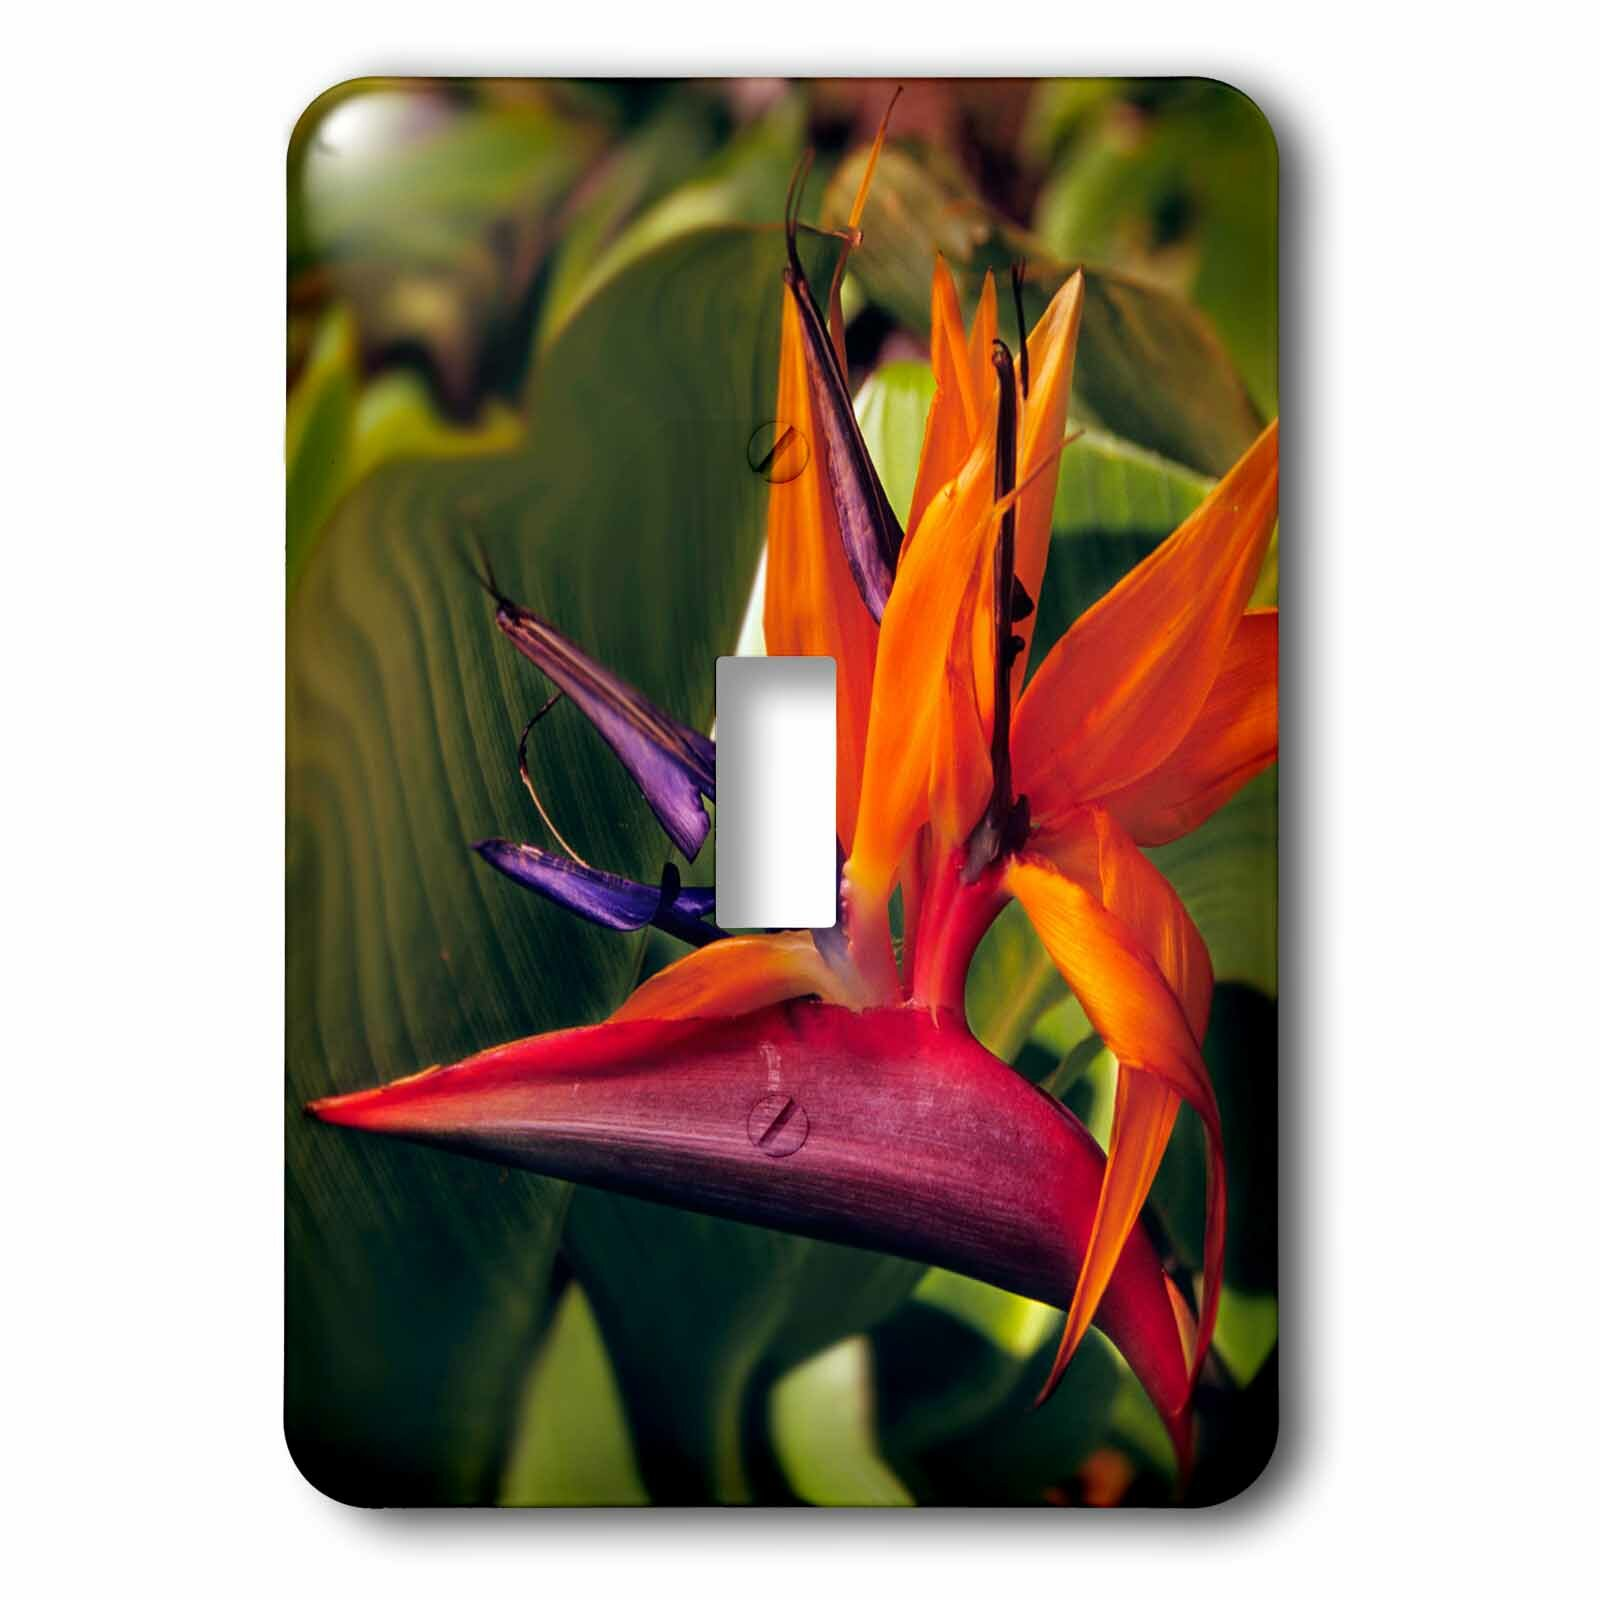 3drose Bird Of Paradise Blooming 1 Gang Toggle Light Switch Wall Plate Wayfair